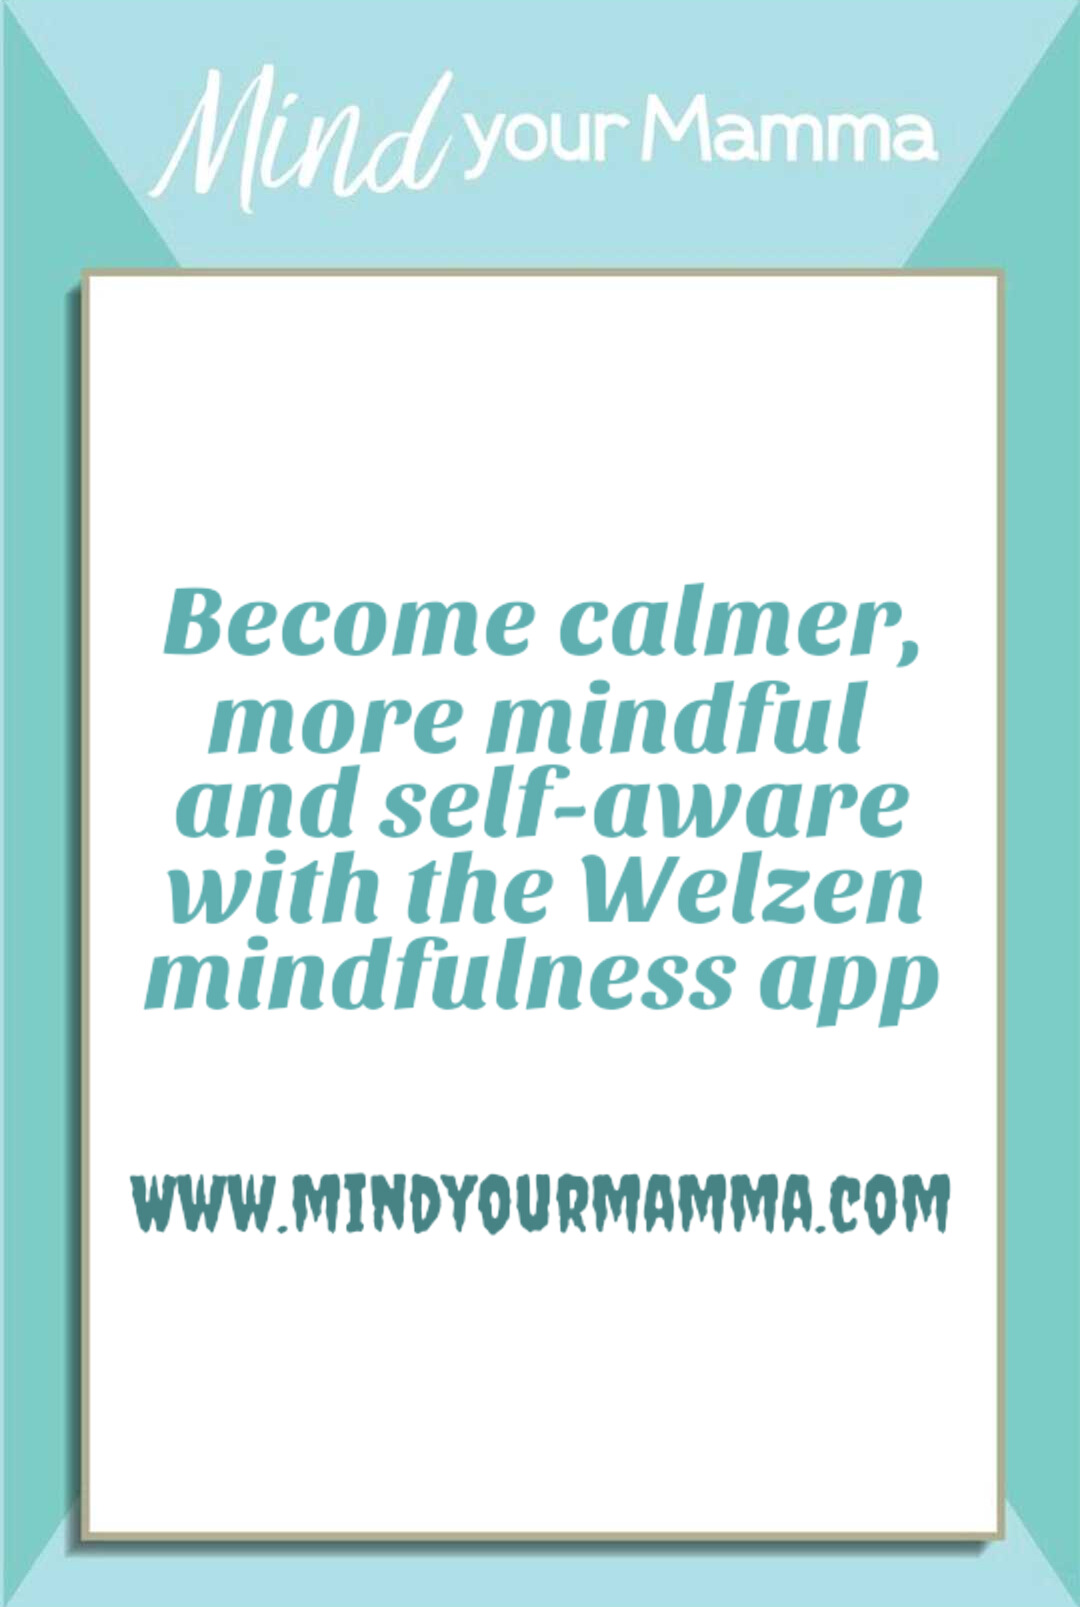 Become calmer, more mindful and self-aware with the Welzen mindfulness app. Mind your Mamma